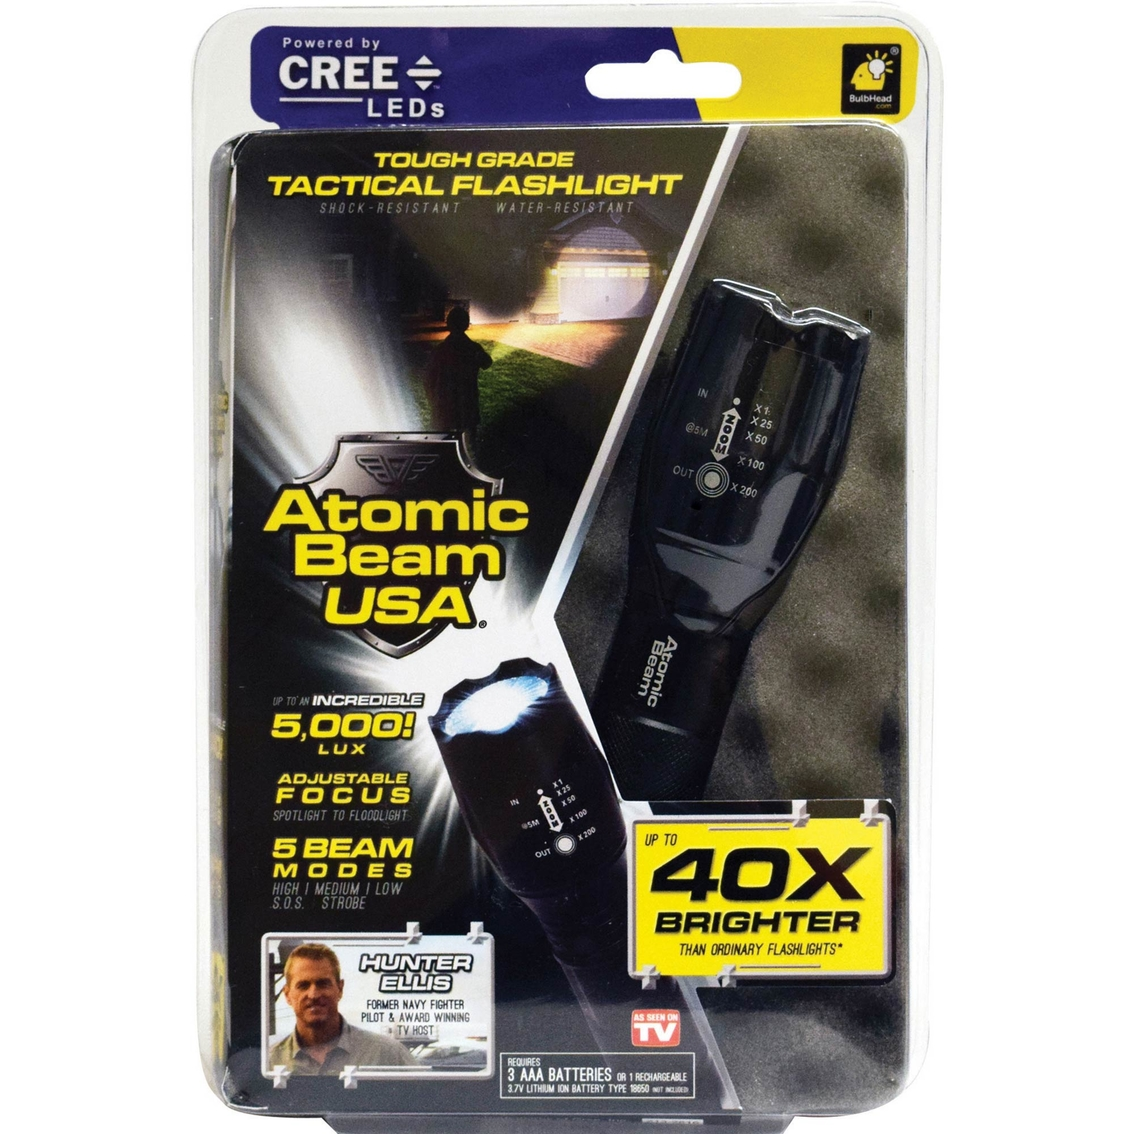 Telebrands Atomic Beam Flashlight Infomercial Products